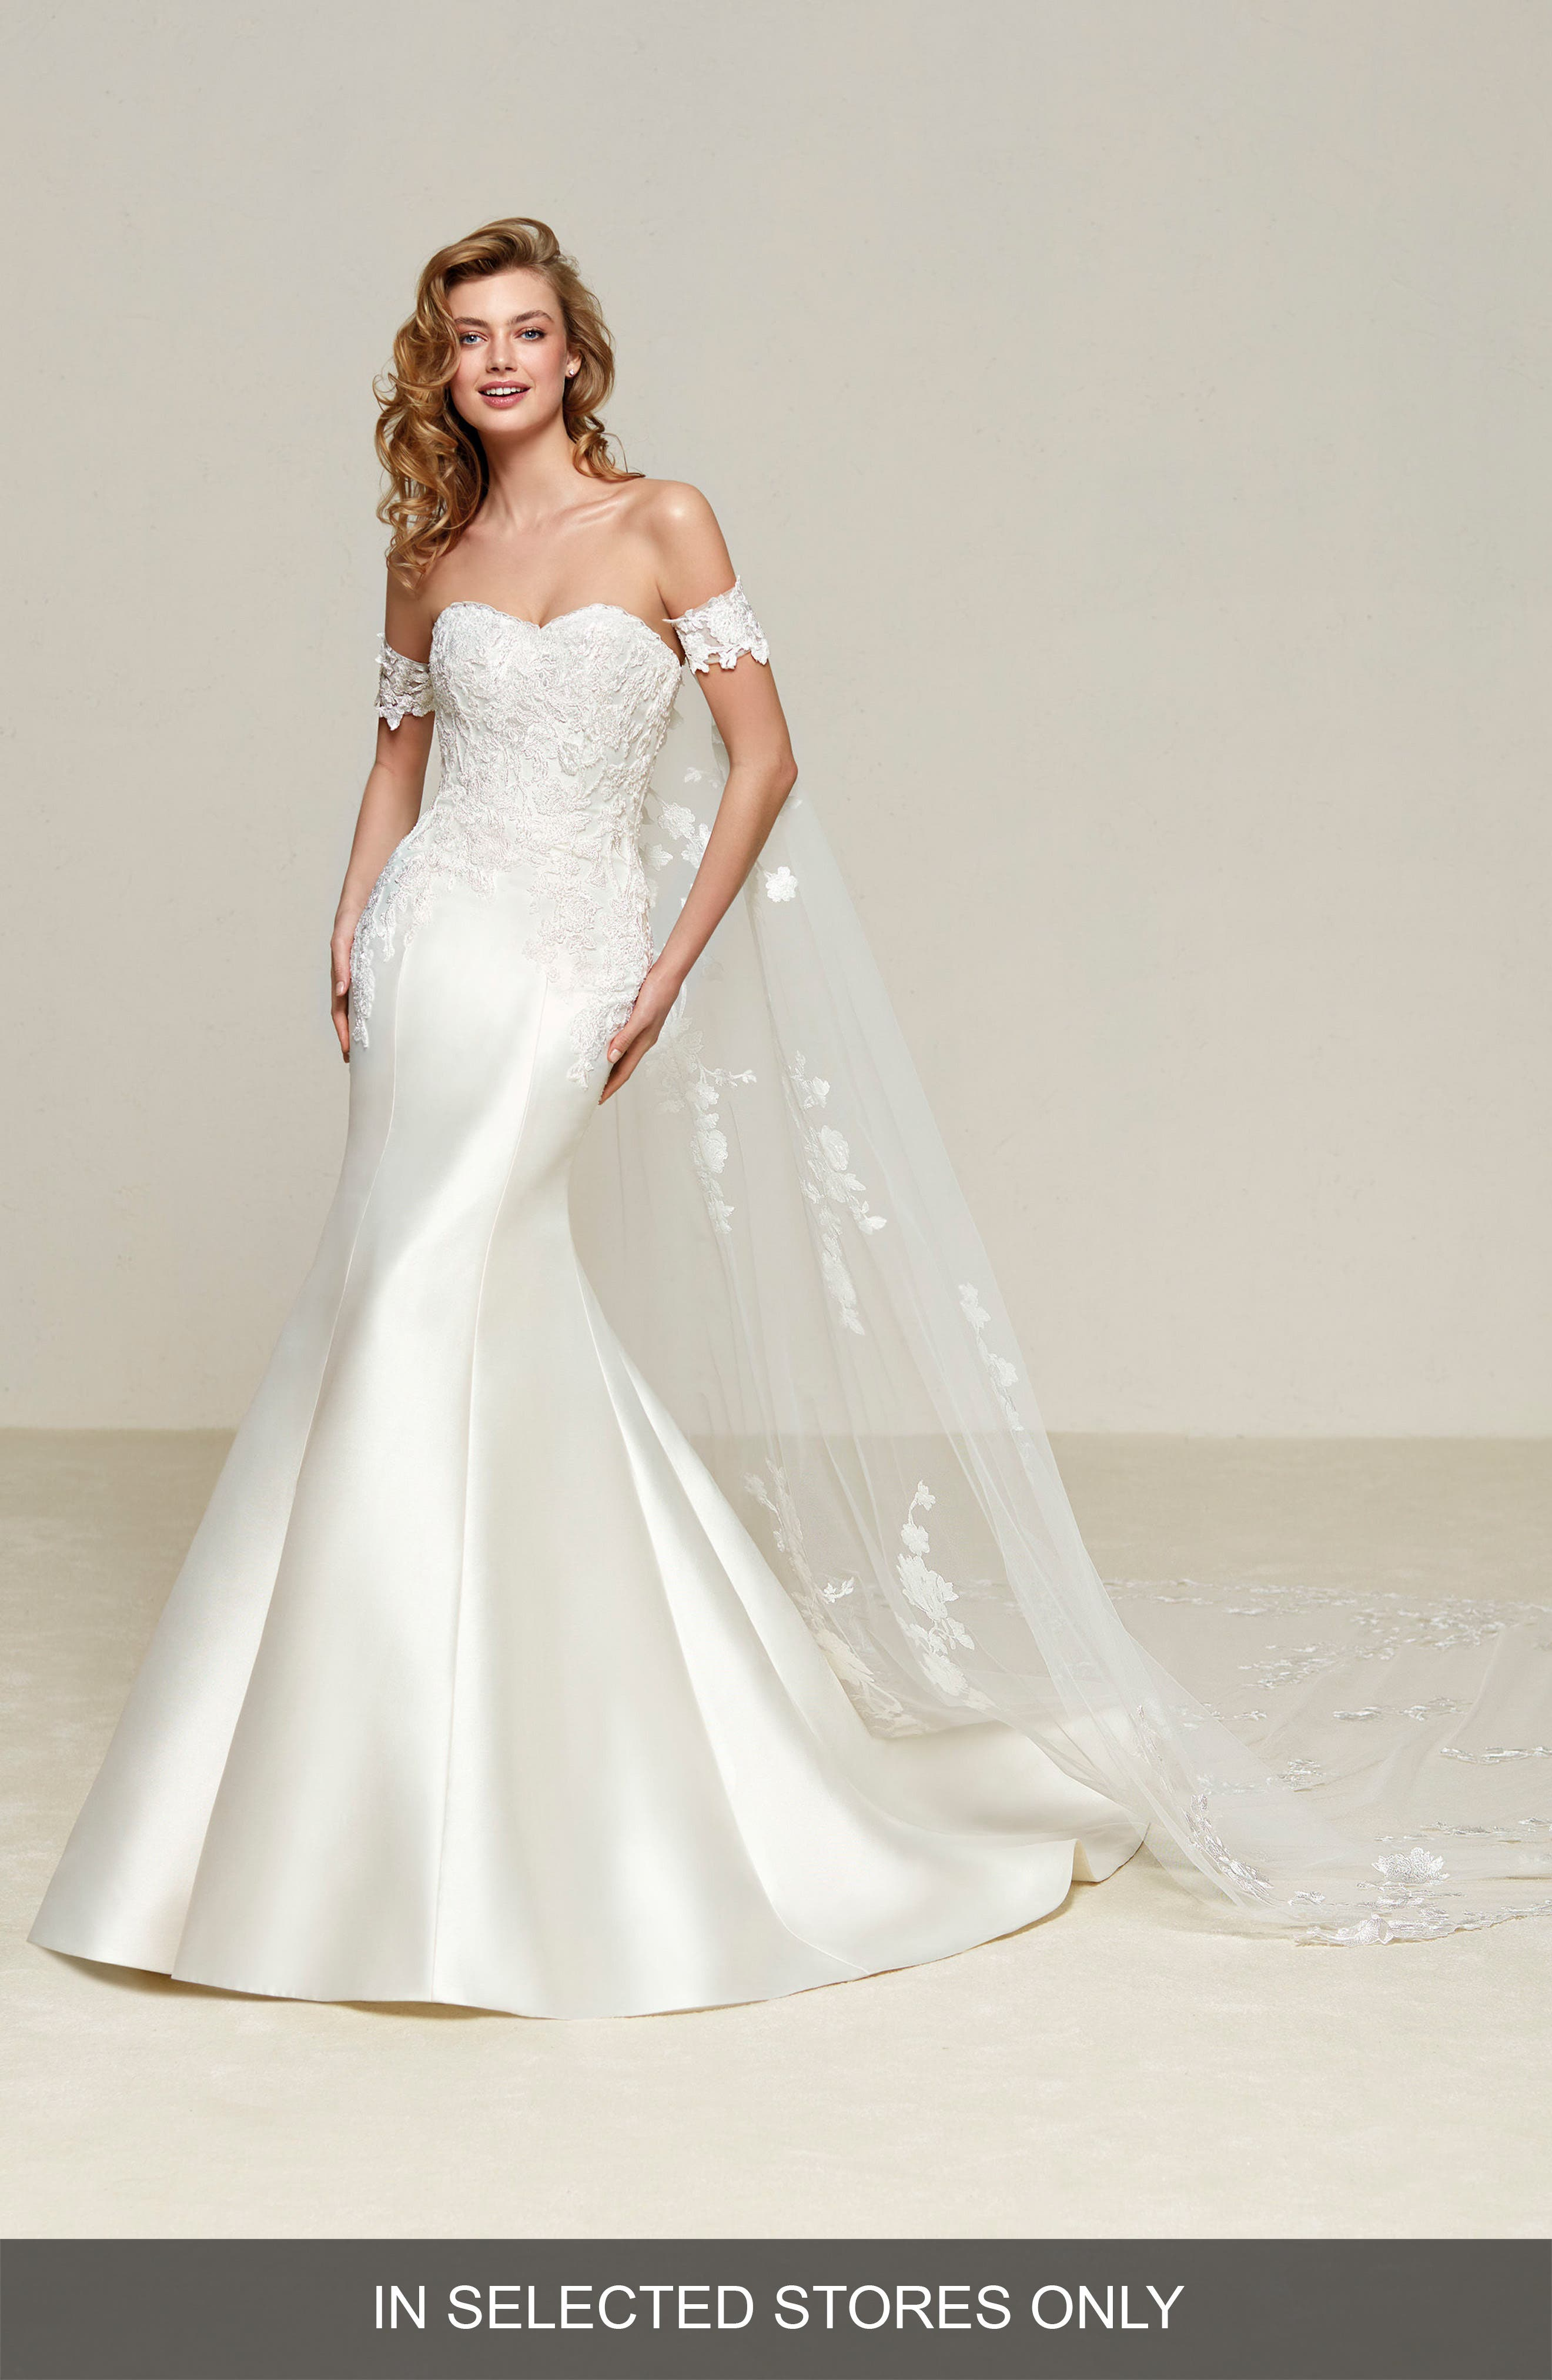 Drileas Strapless Mermaid Gown,                         Main,                         color, 900